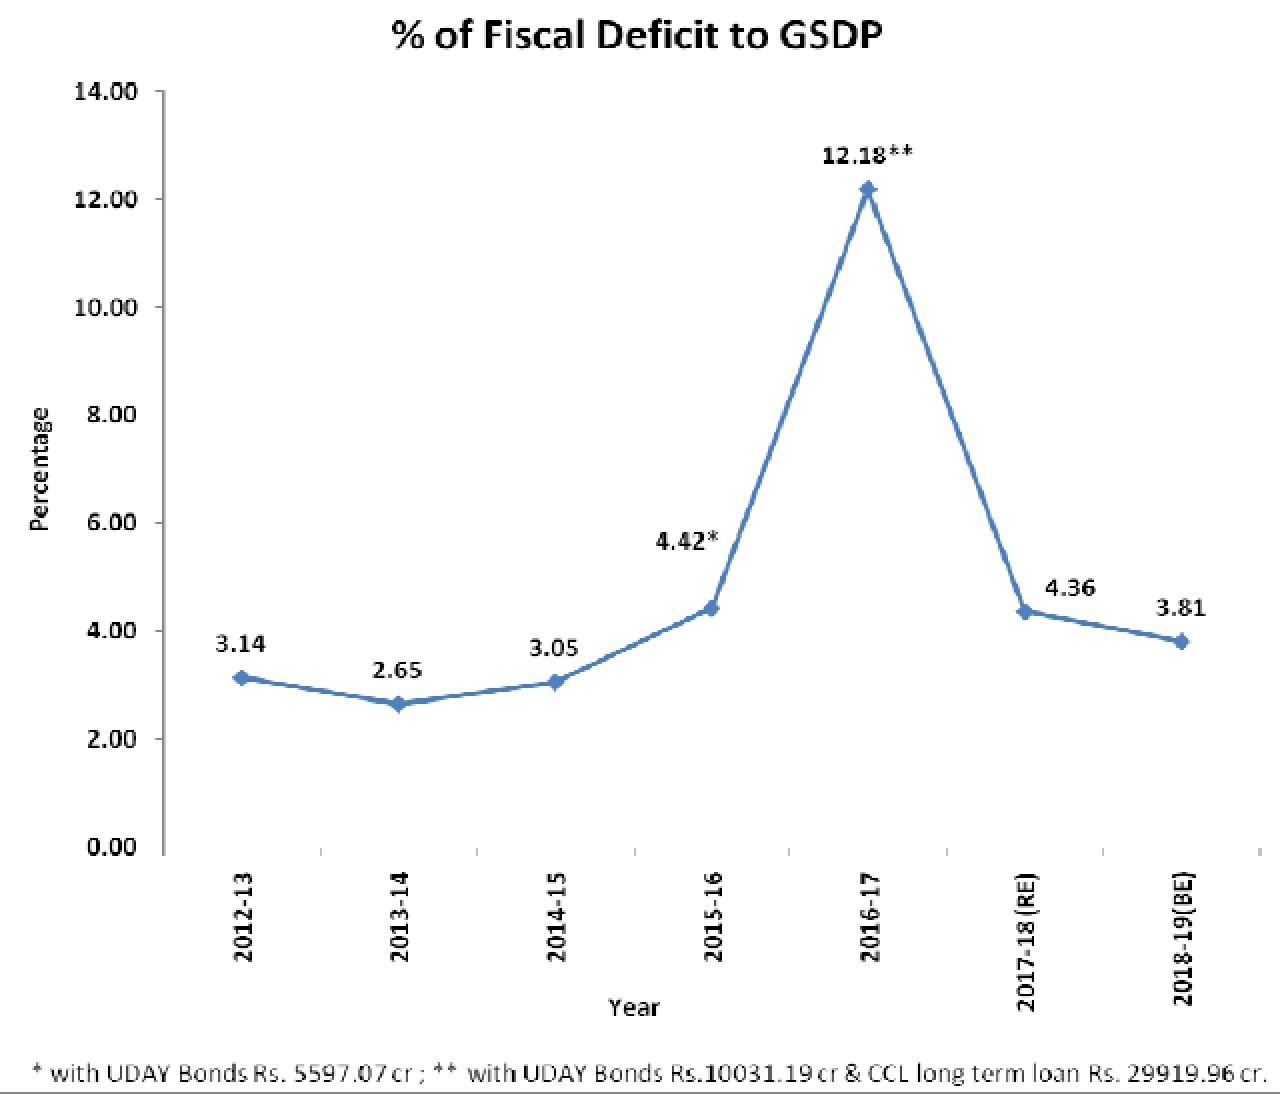 Fiscal deficit to GSDP